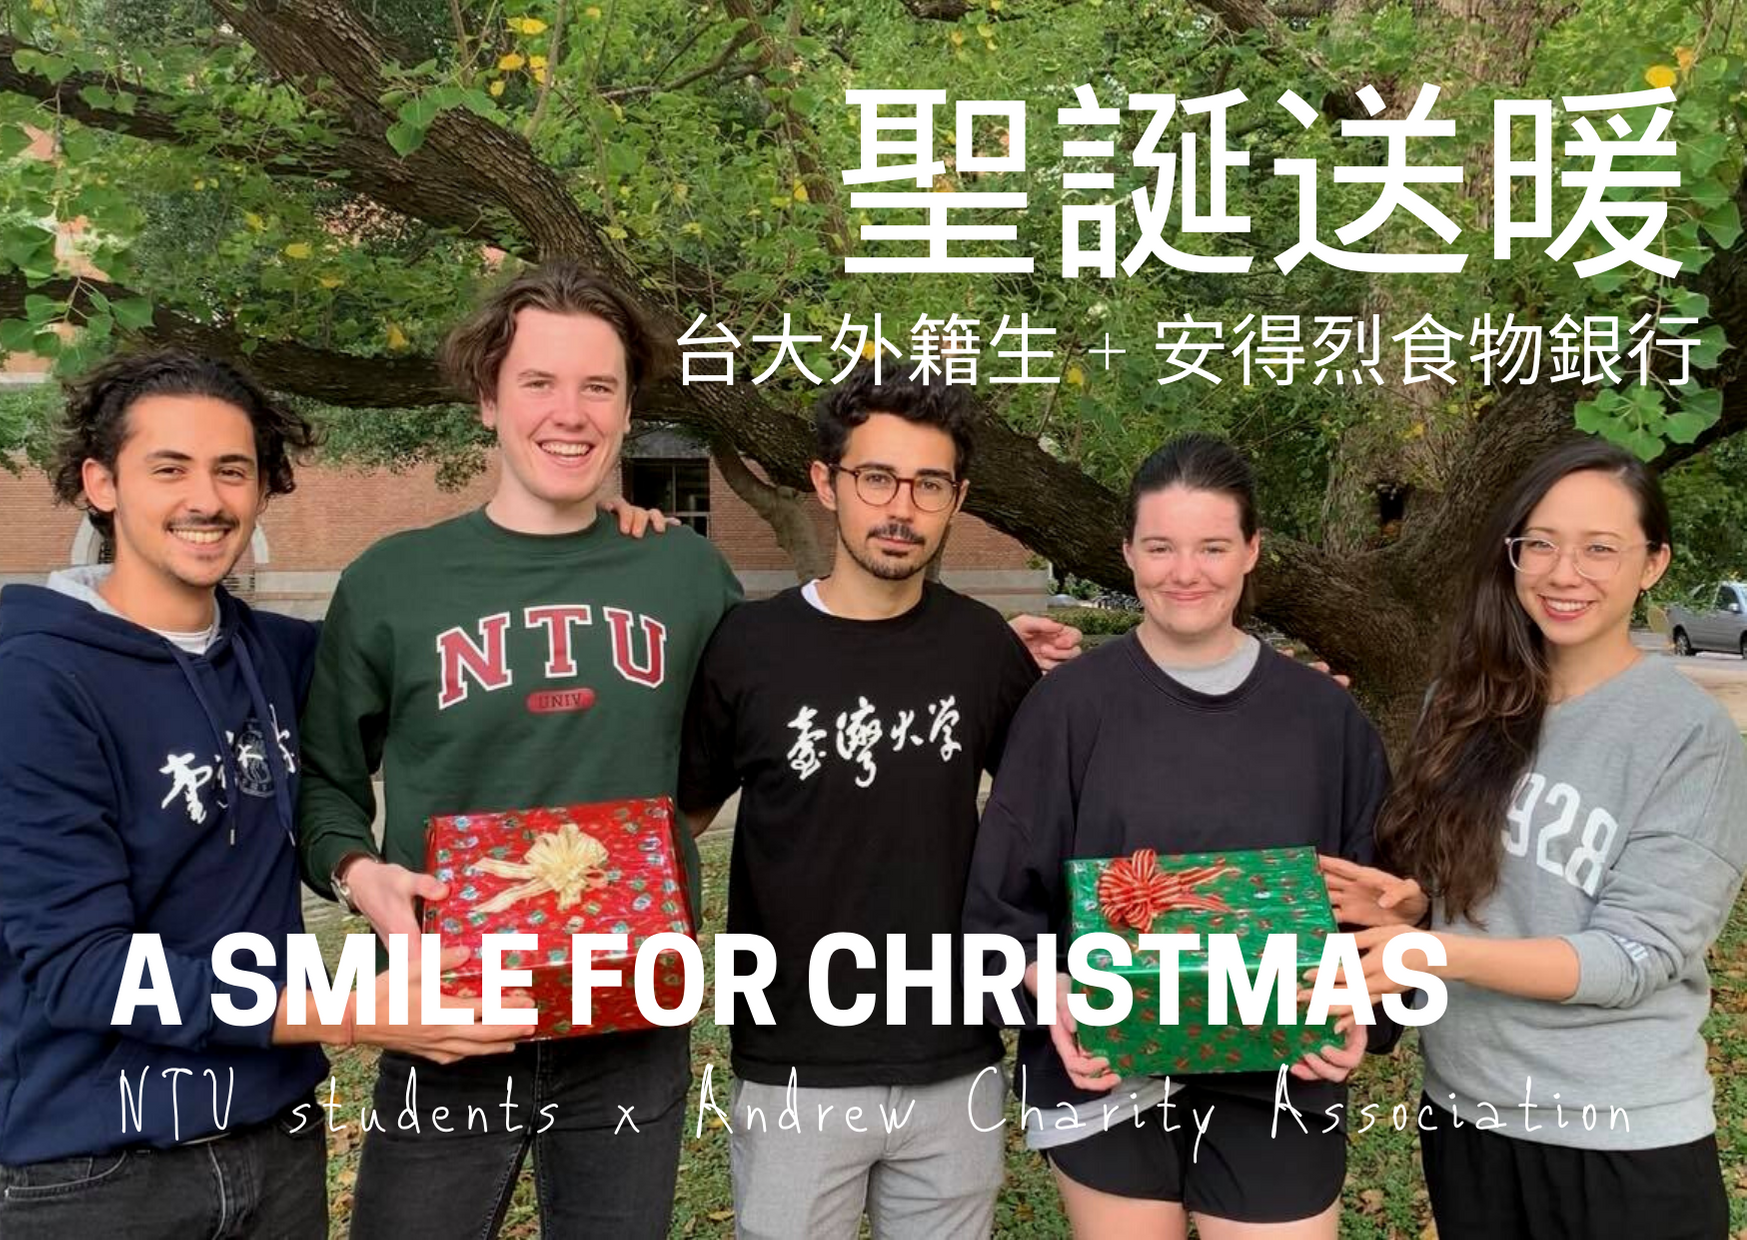 A Smile for Christmas/聖誕送暖